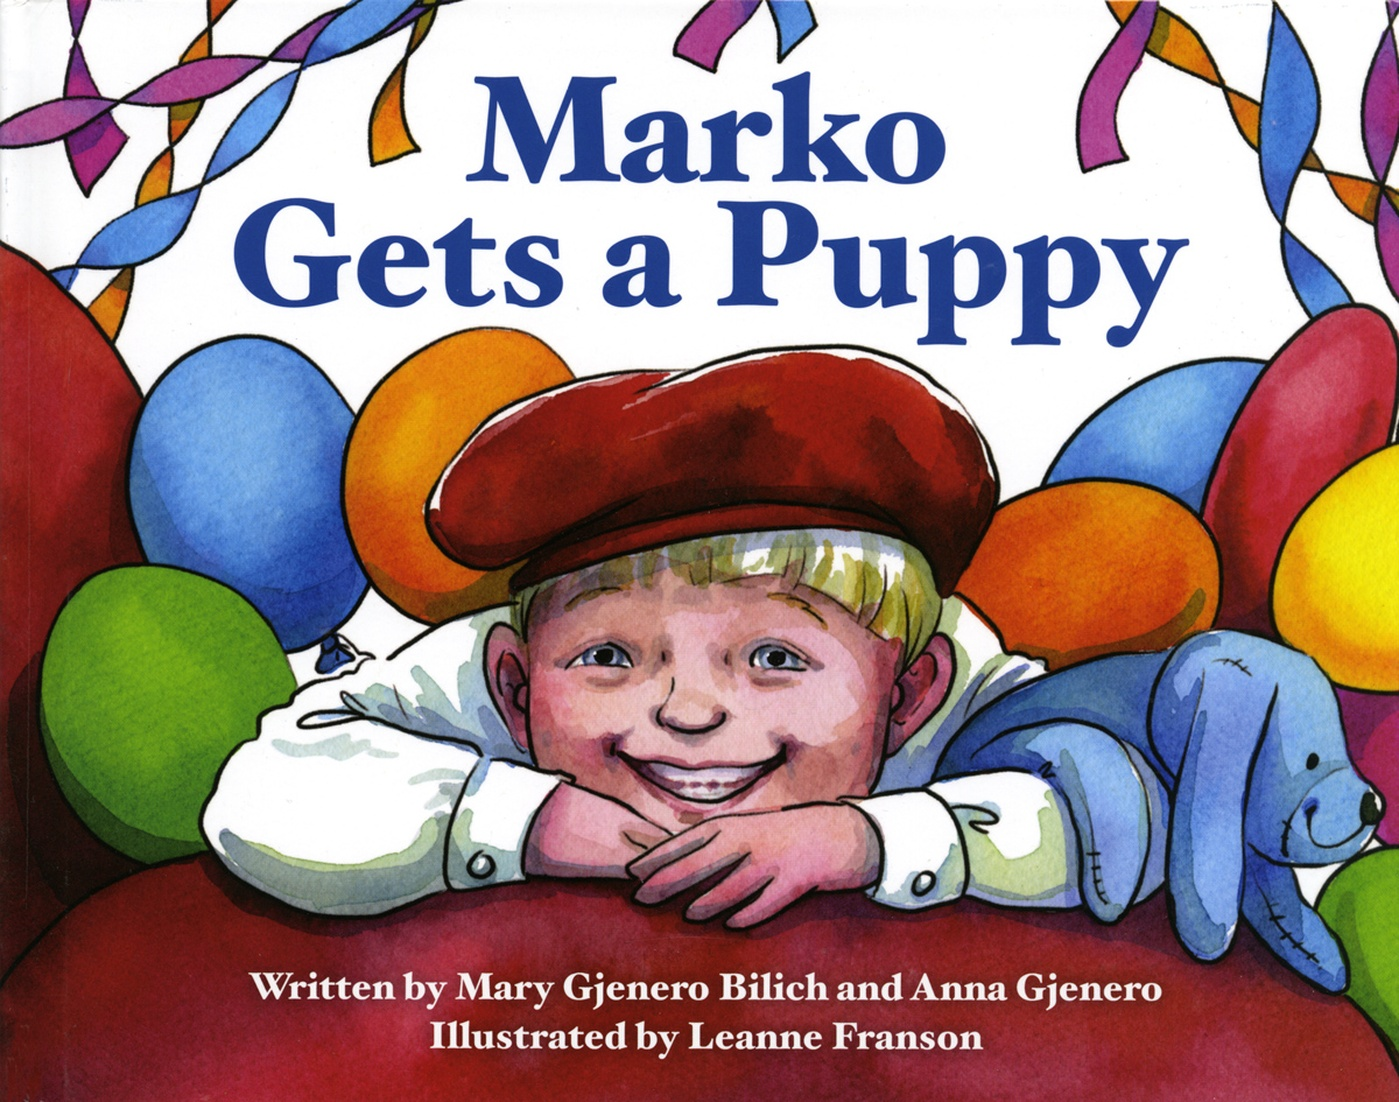 Leanne Franson - Marko Gets a Puppy book cover